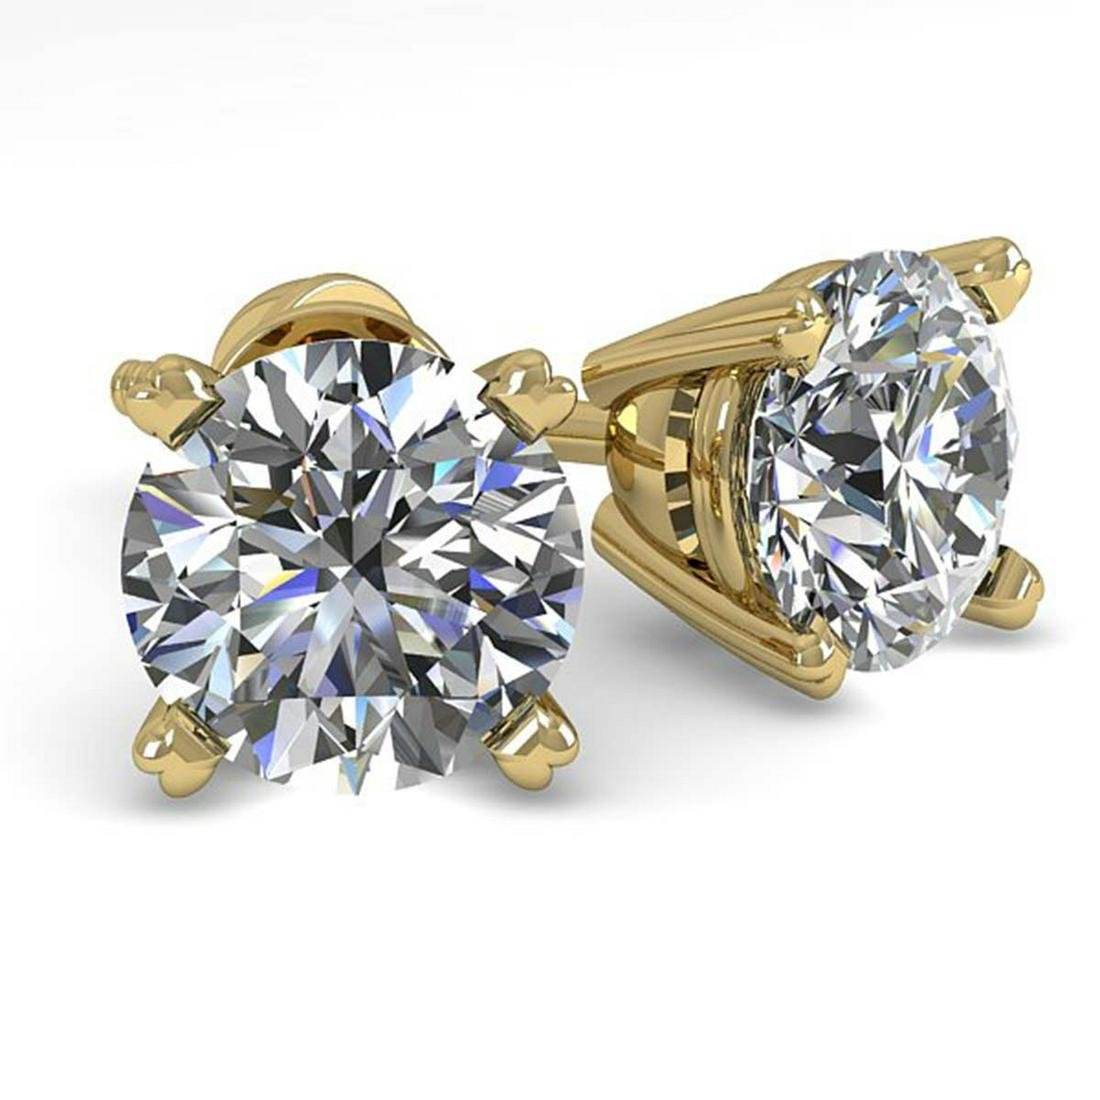 1.53 ctw VS/SI Diamond Stud Earrings 14K Yellow Gold -